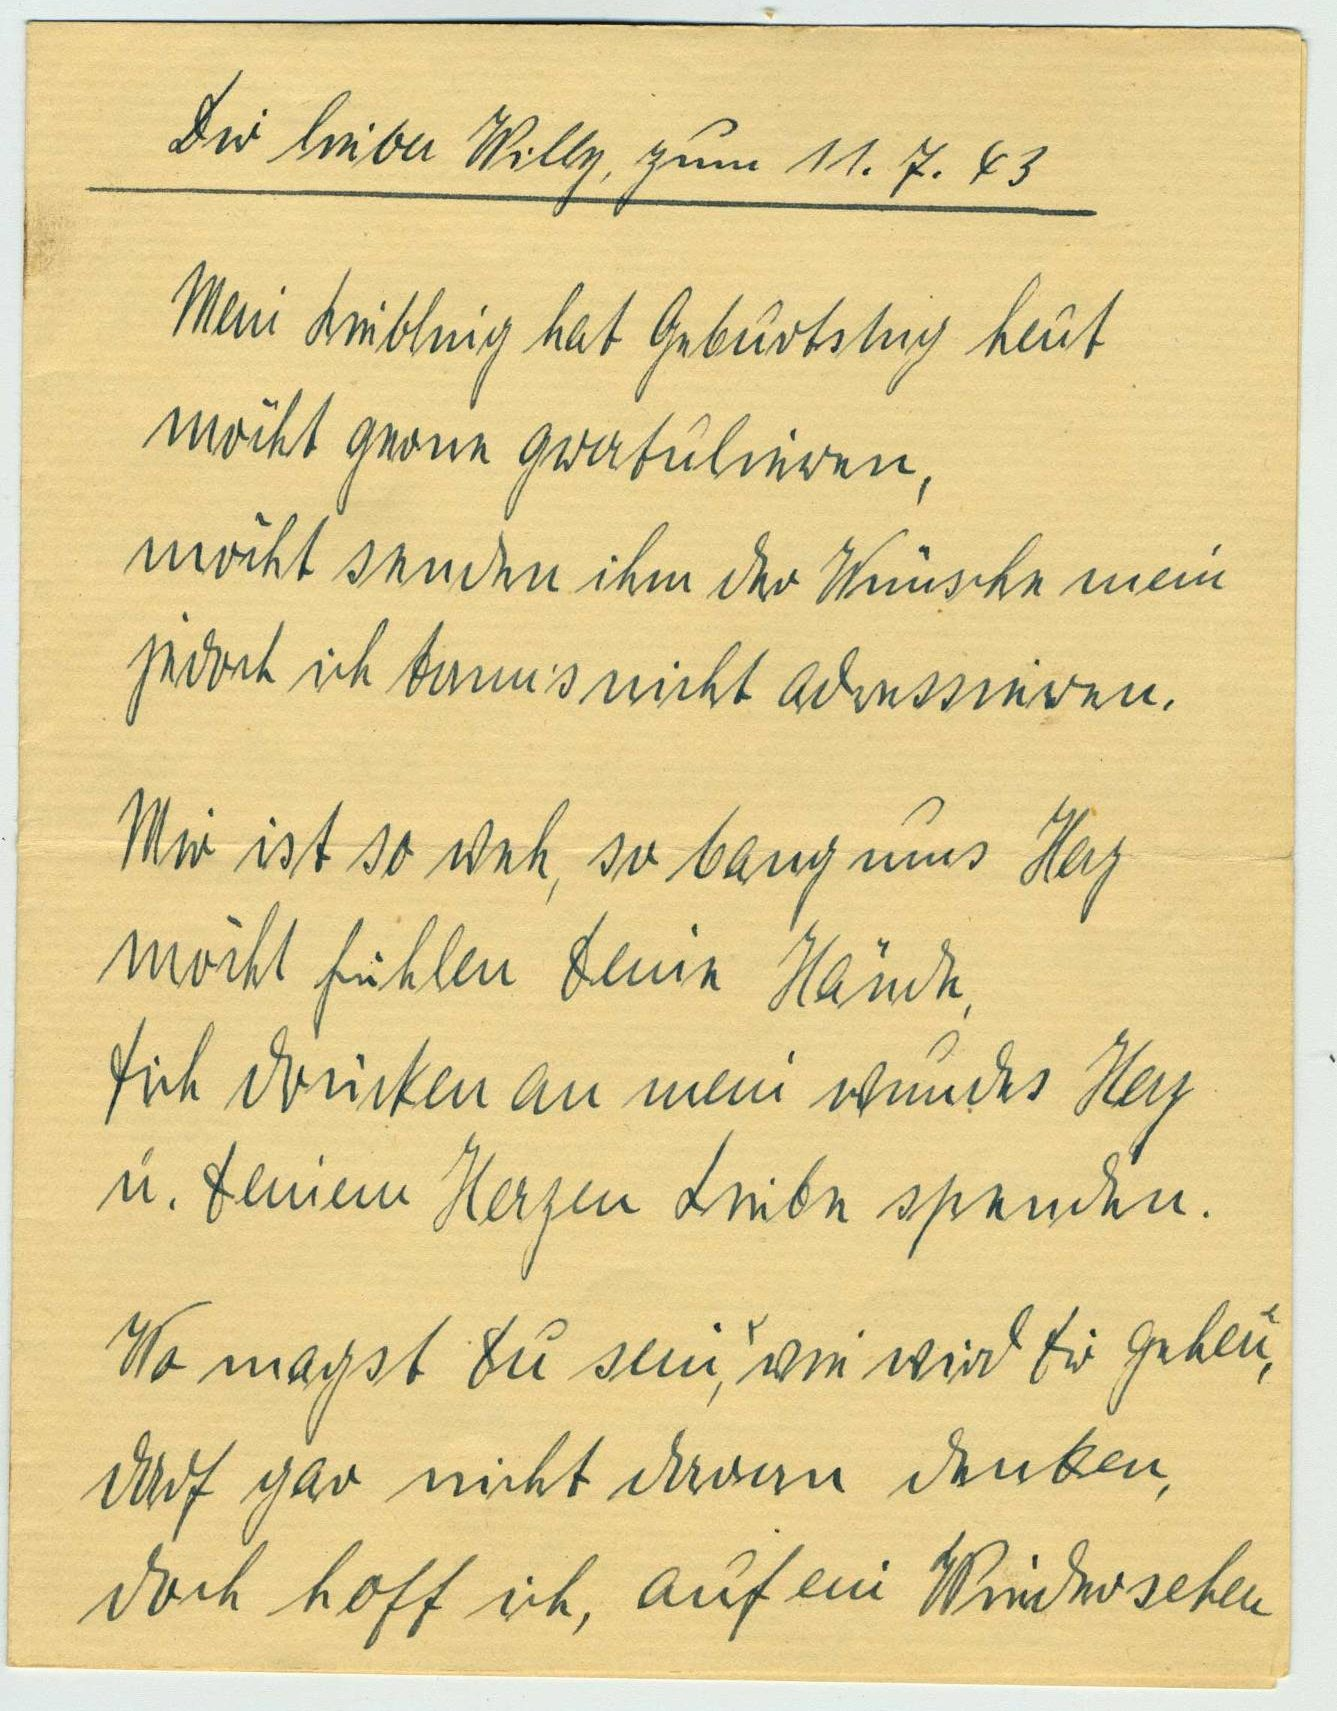 Letter from Paula to her husband for his birthday, Offenbach am Main (Germany), July 11, 1943.